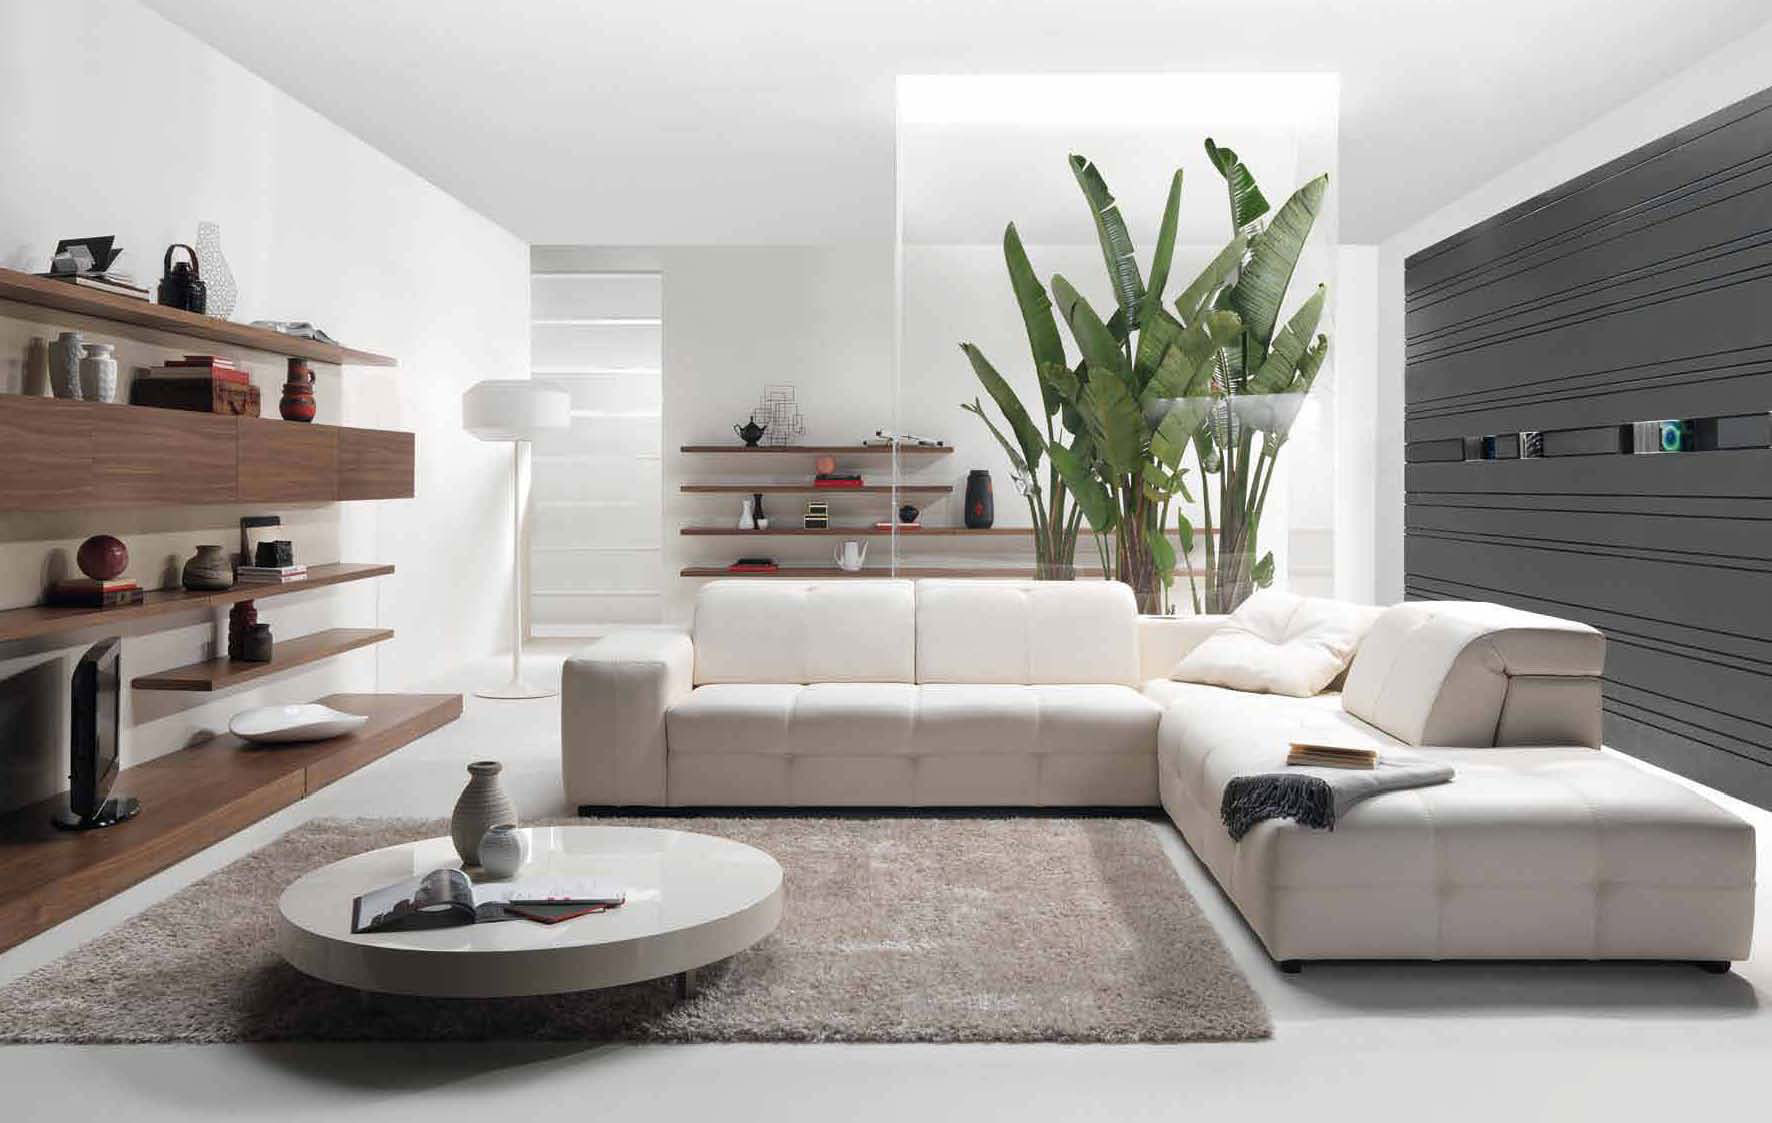 25 best modern living room designs - Interior design ideas contemporary living room decor ...